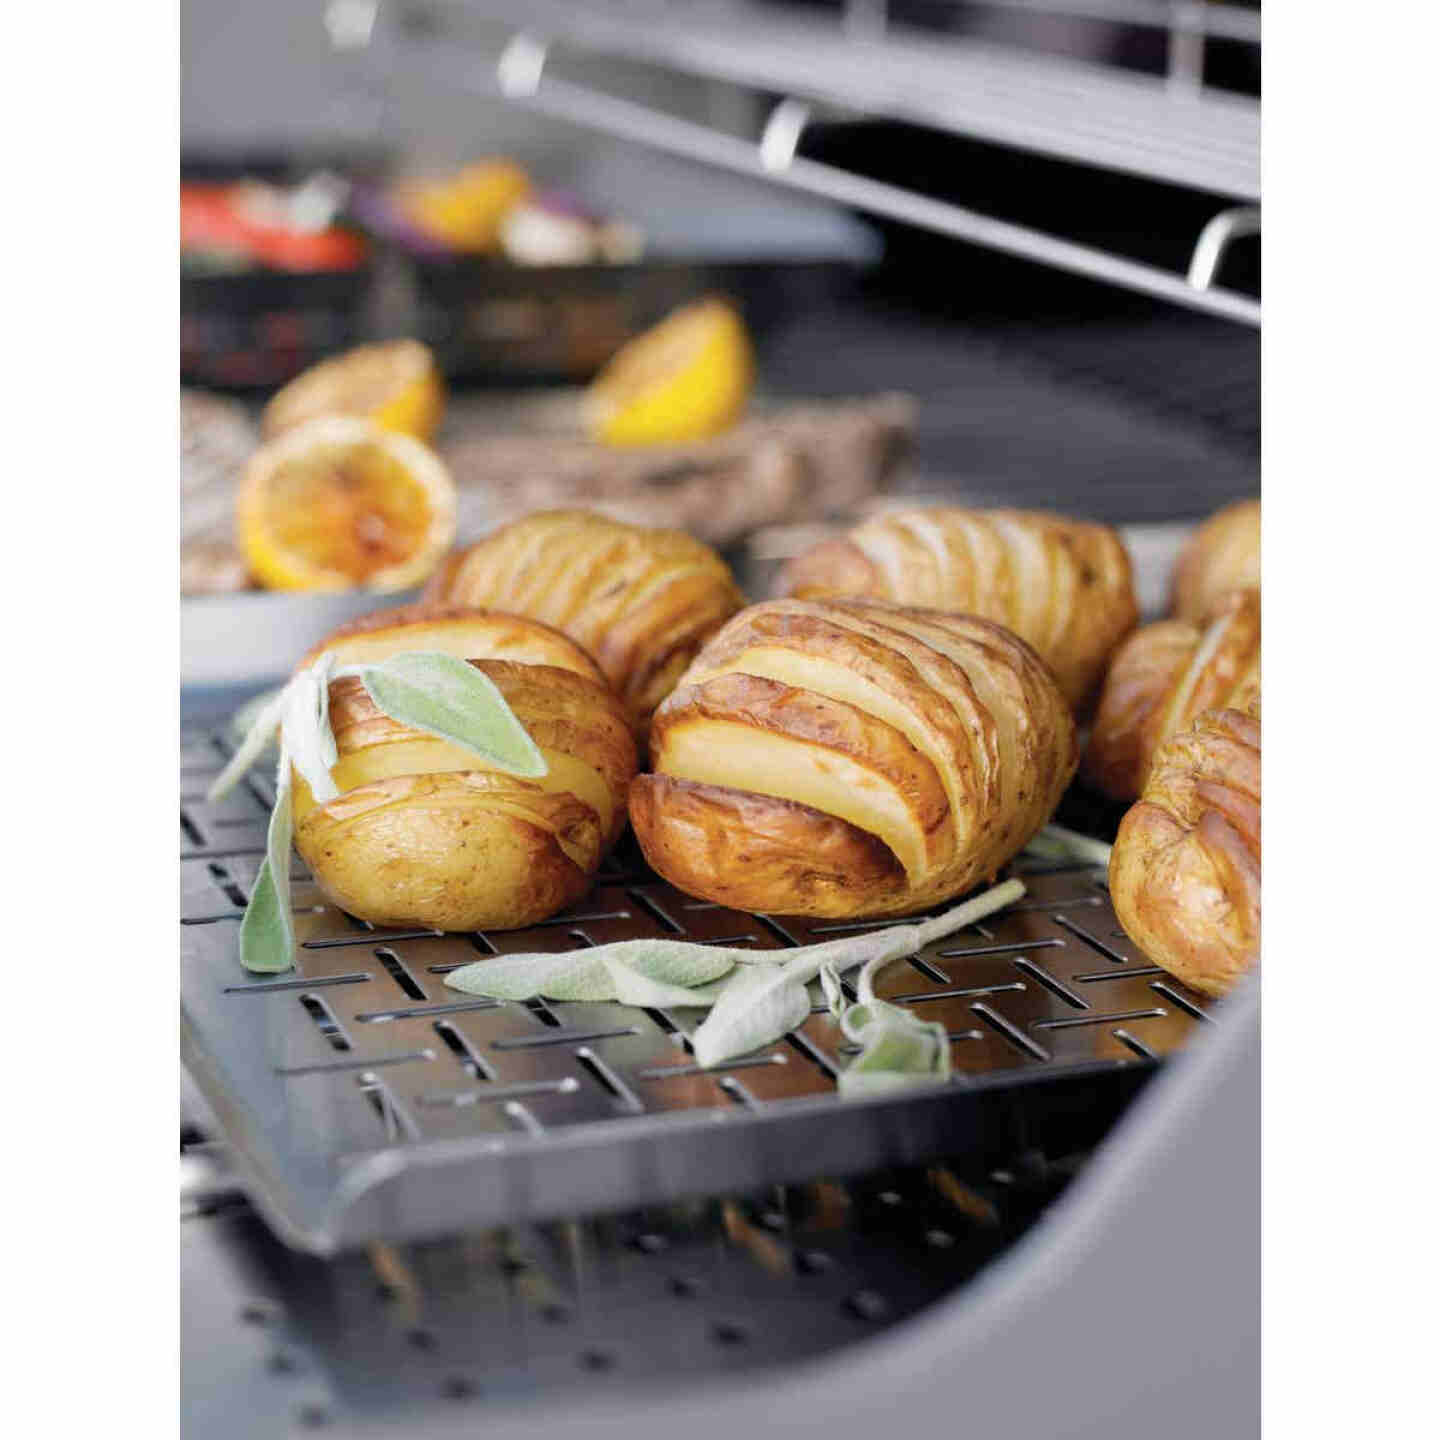 Weber Style Stainless Steel Grill Pan Image 3